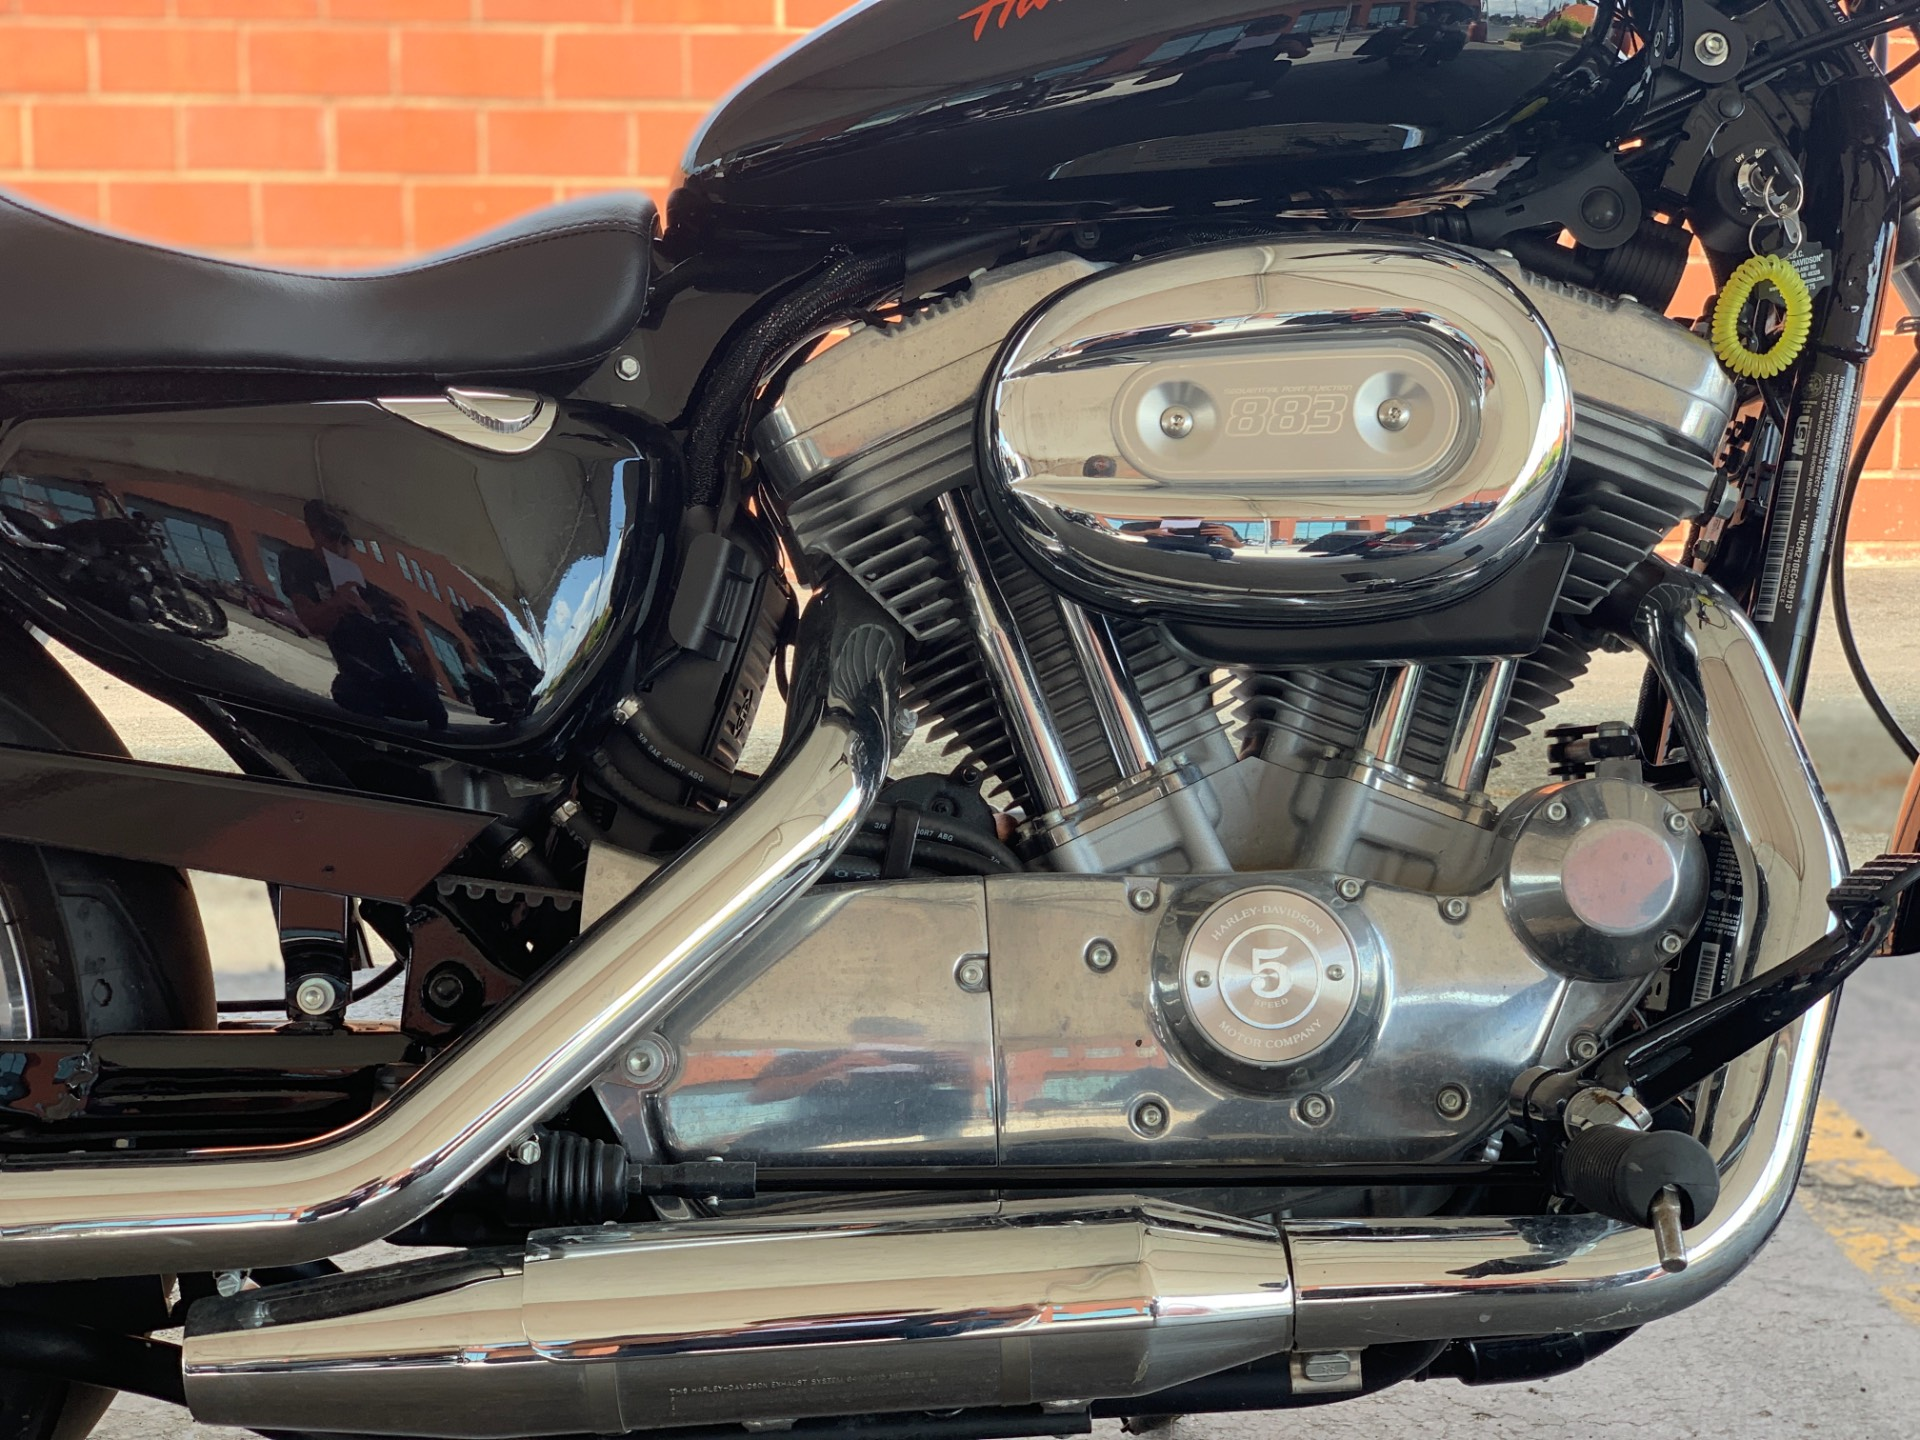 2014 Harley-Davidson XL883L in Waterford, Michigan - Photo 4